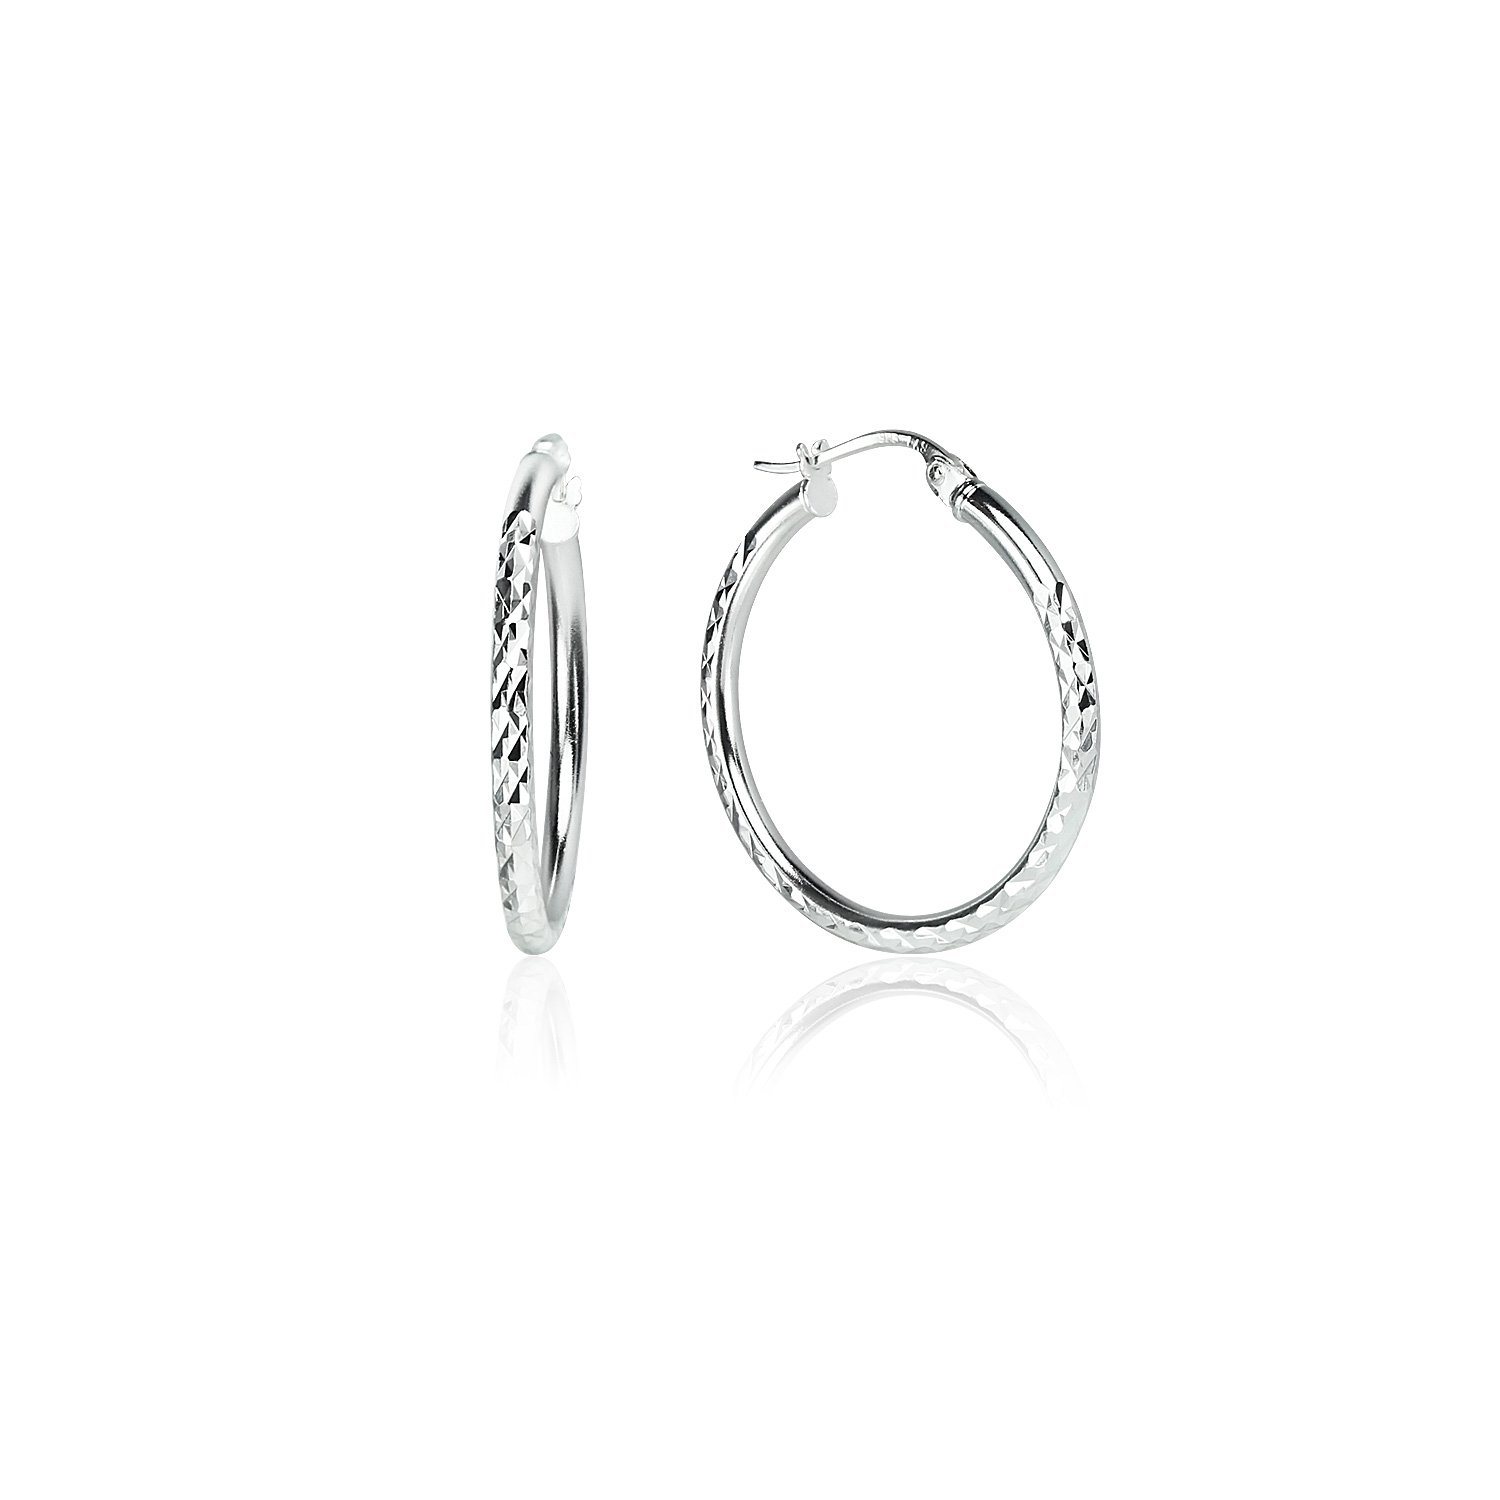 LOVVE Sterling Silver High Polished Round Diamond Textured Click-Top Hoop Earrings, 2x25mm